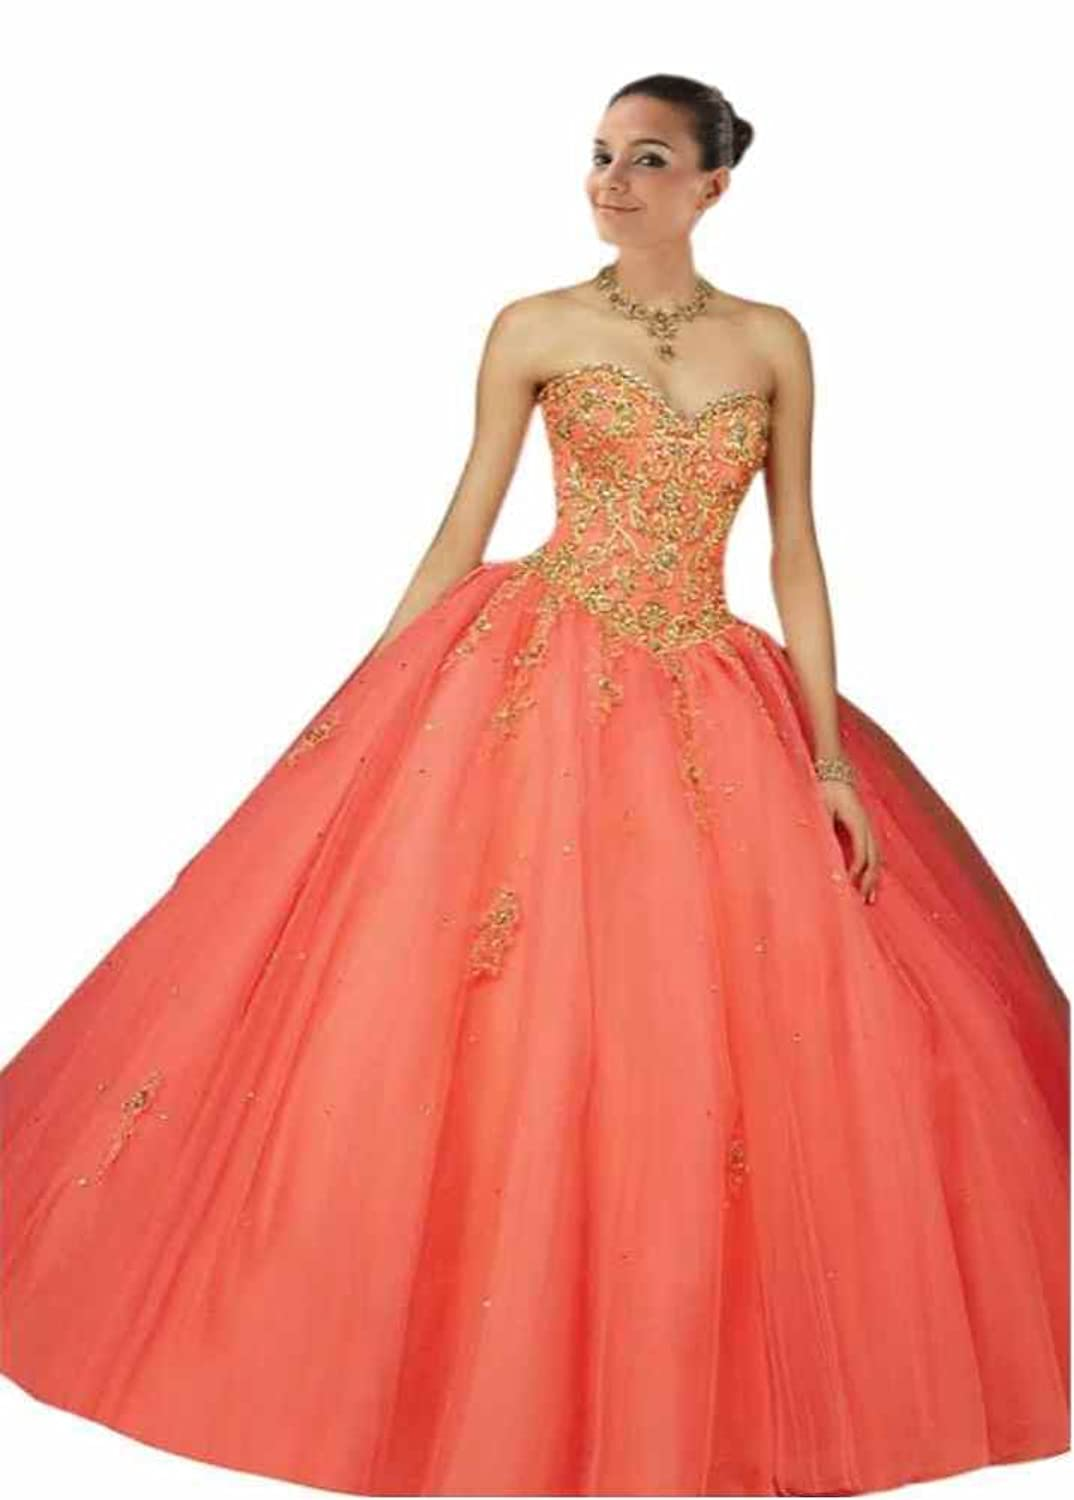 Mollybridal Sequin Embroidery Long Tulle Ball Gown Quinceanera Dress